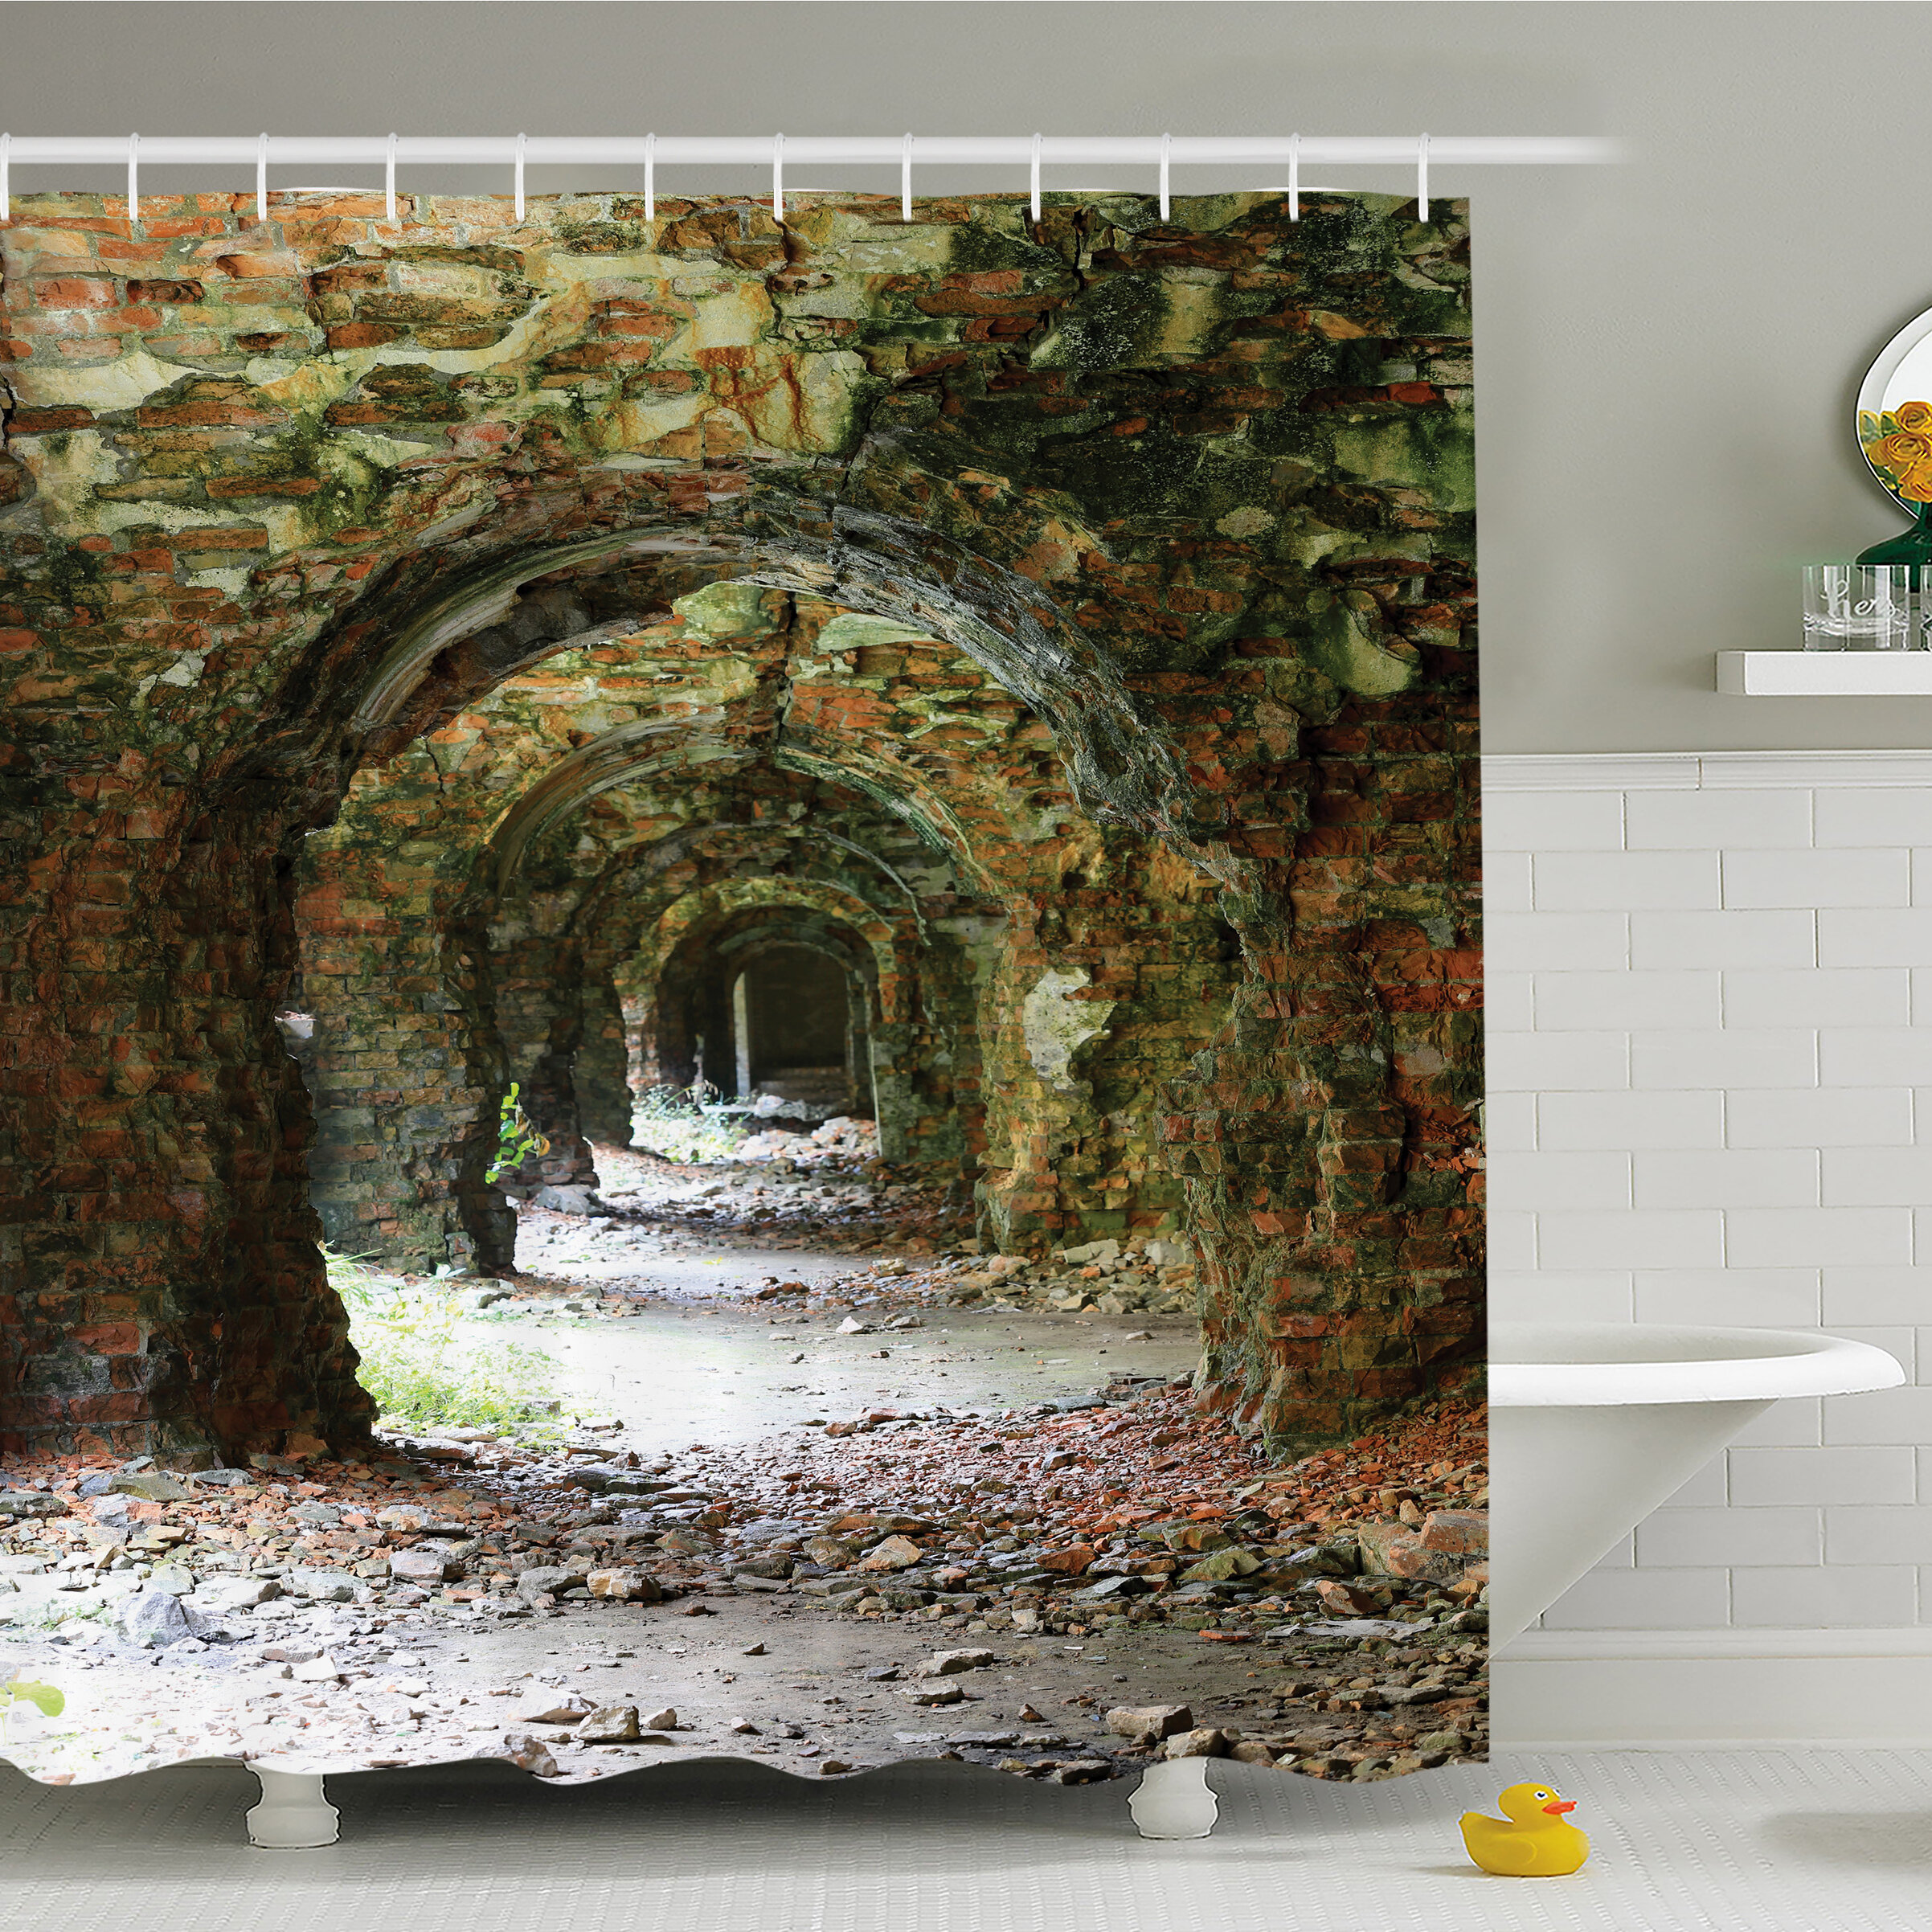 Ambesonne Rustic Home Ruins Of Arched Medieval Period Brick Tunnel Architecture Heritage Design Shower Curtain Set